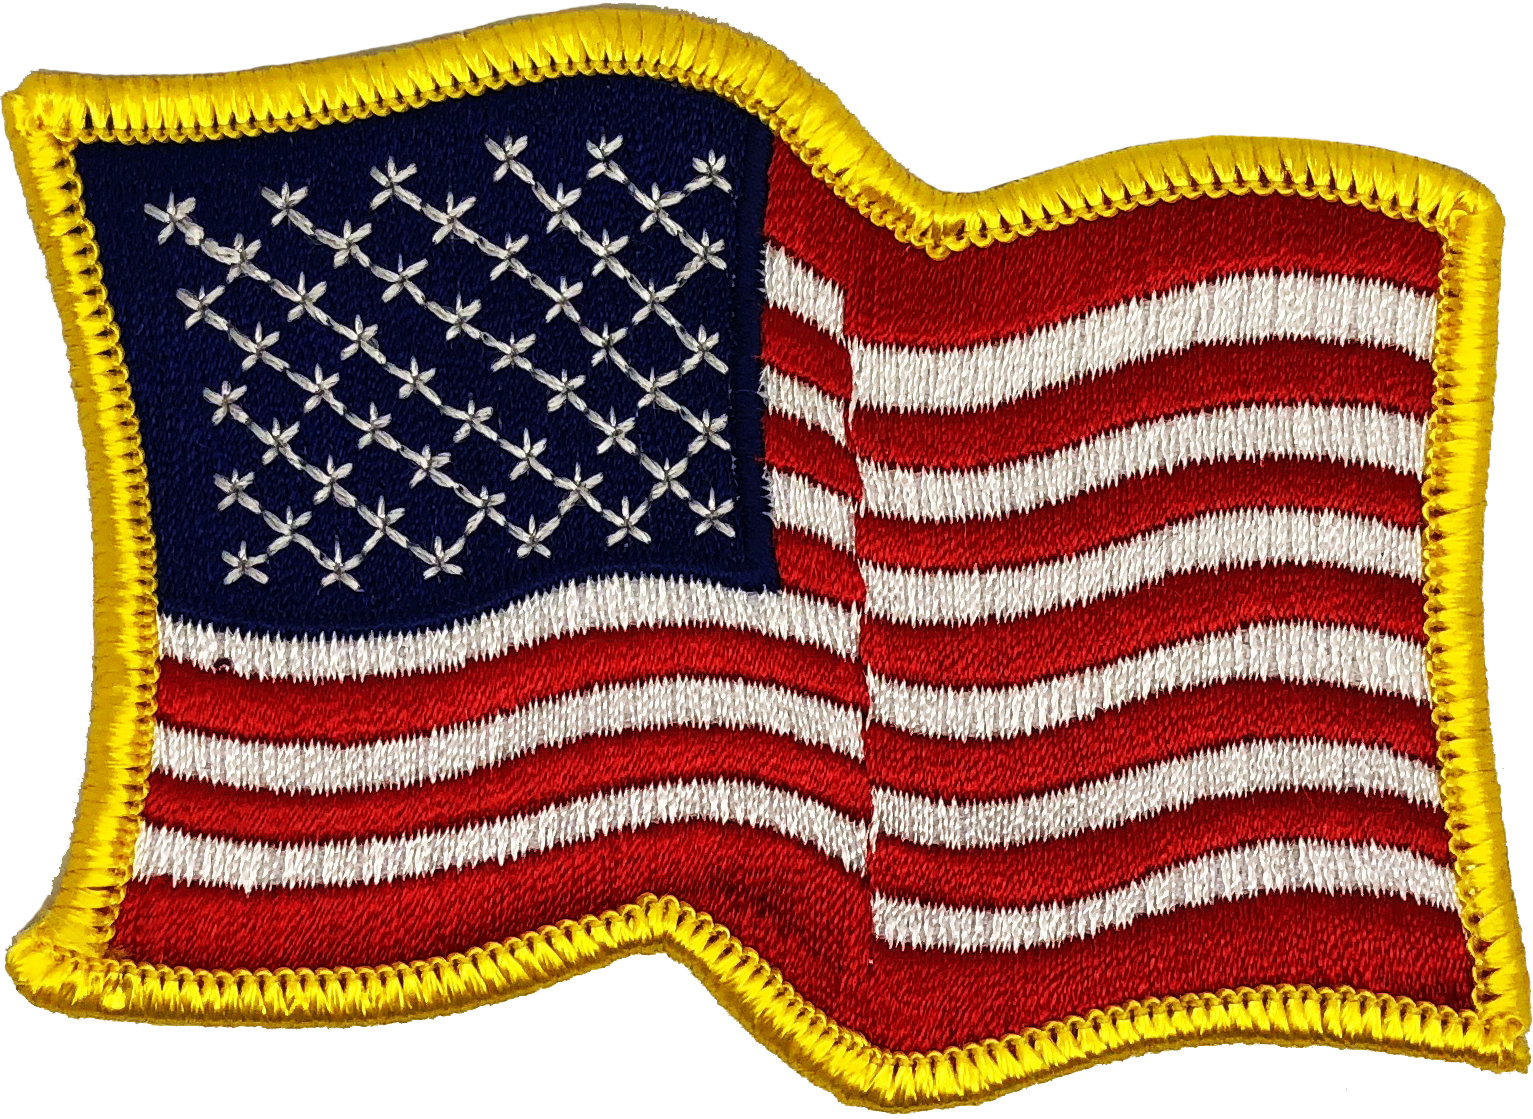 Usa flag waving png. United states of america